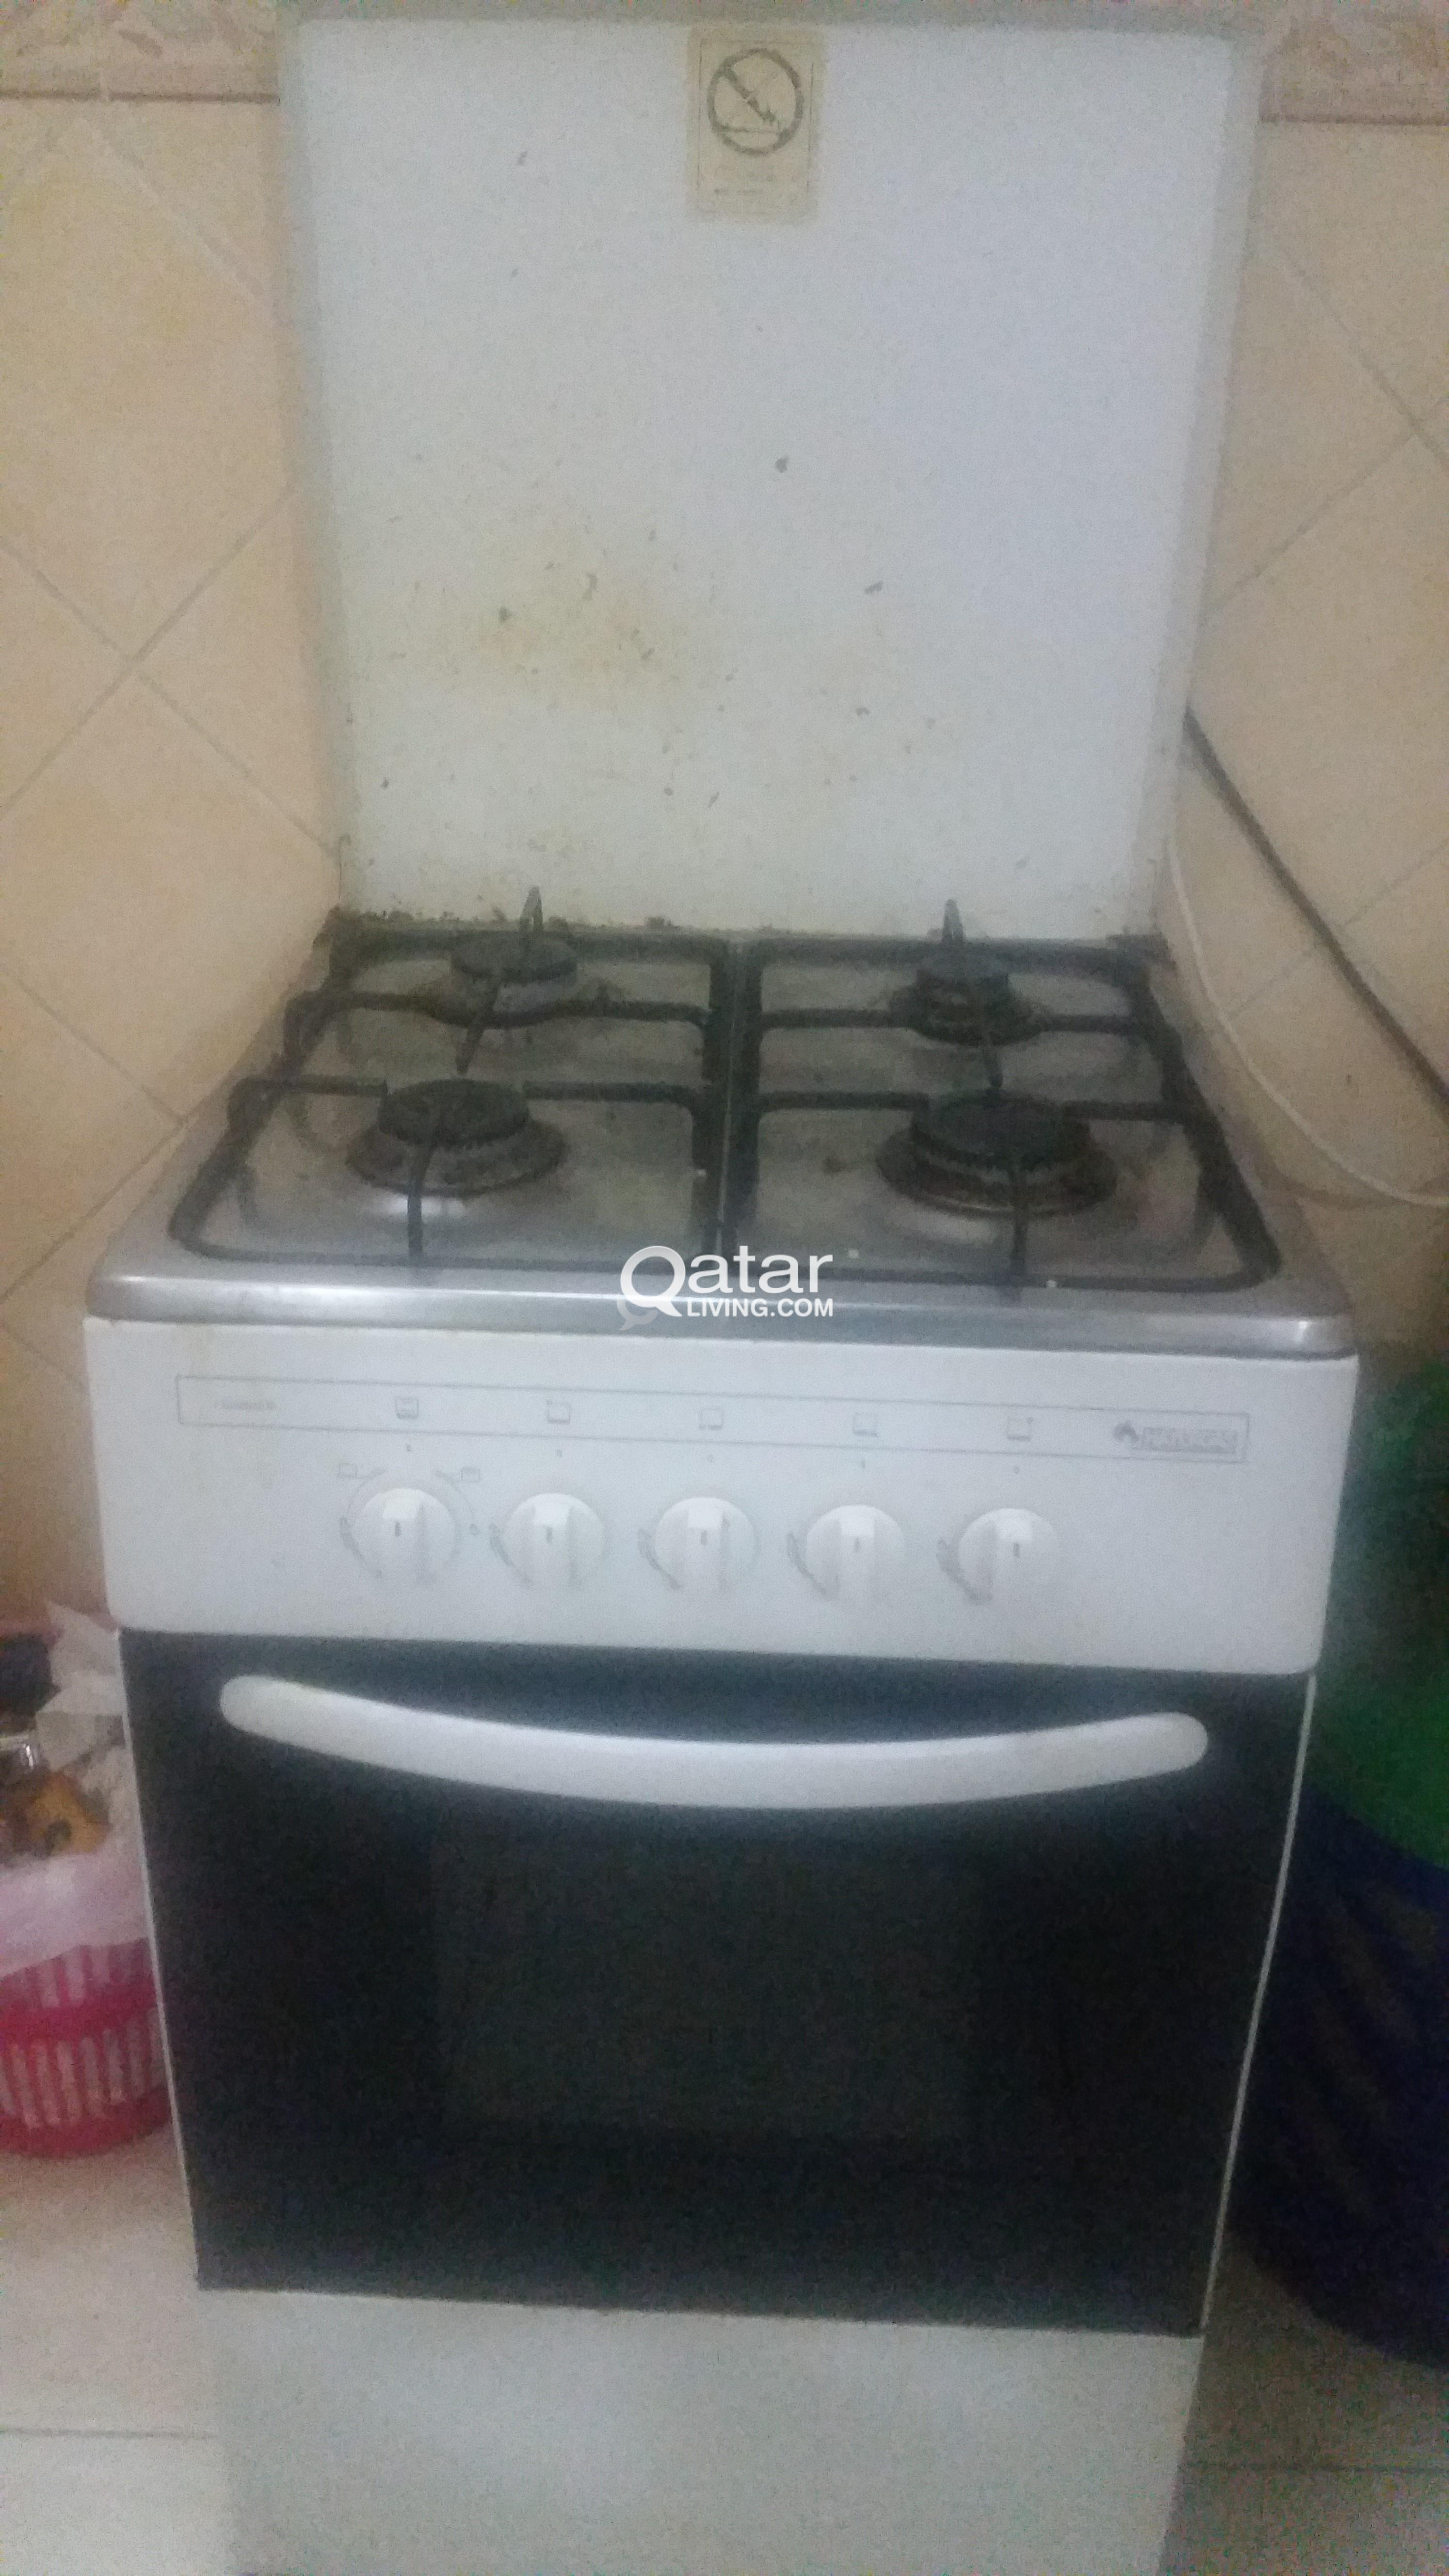 4 Burner Stove cum oven for sale | Qatar Living